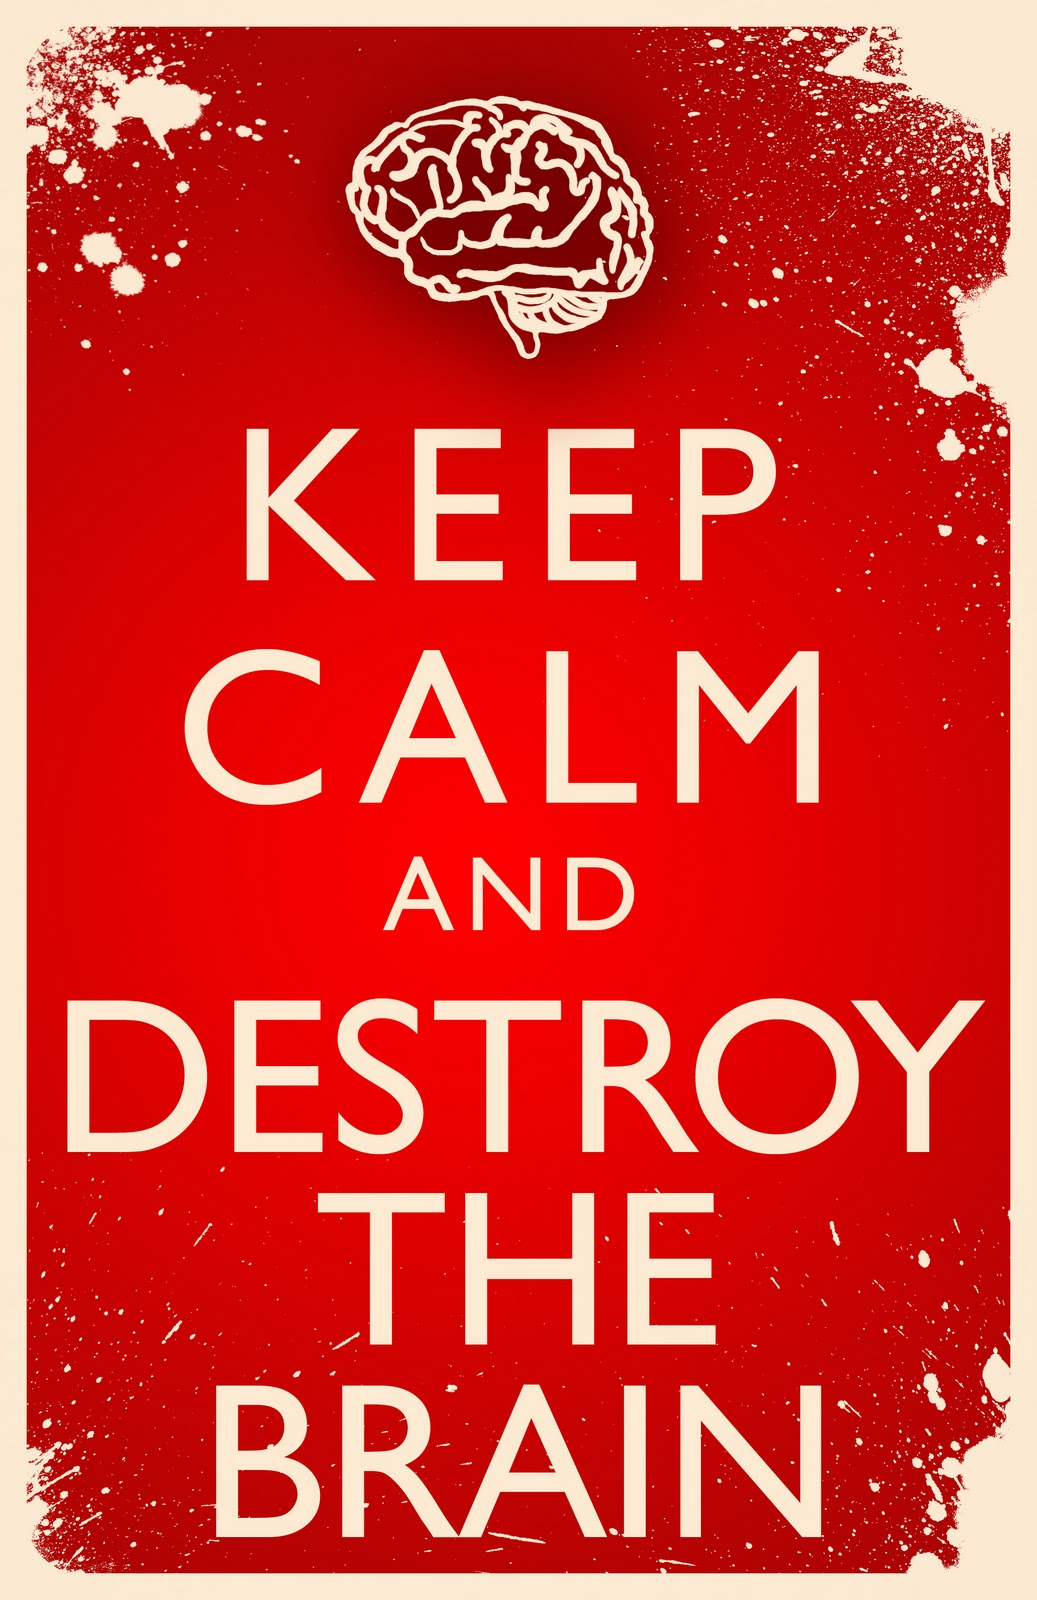 Keep Calm and Destroy The Brain HD Wallpaper 440 1037x1600